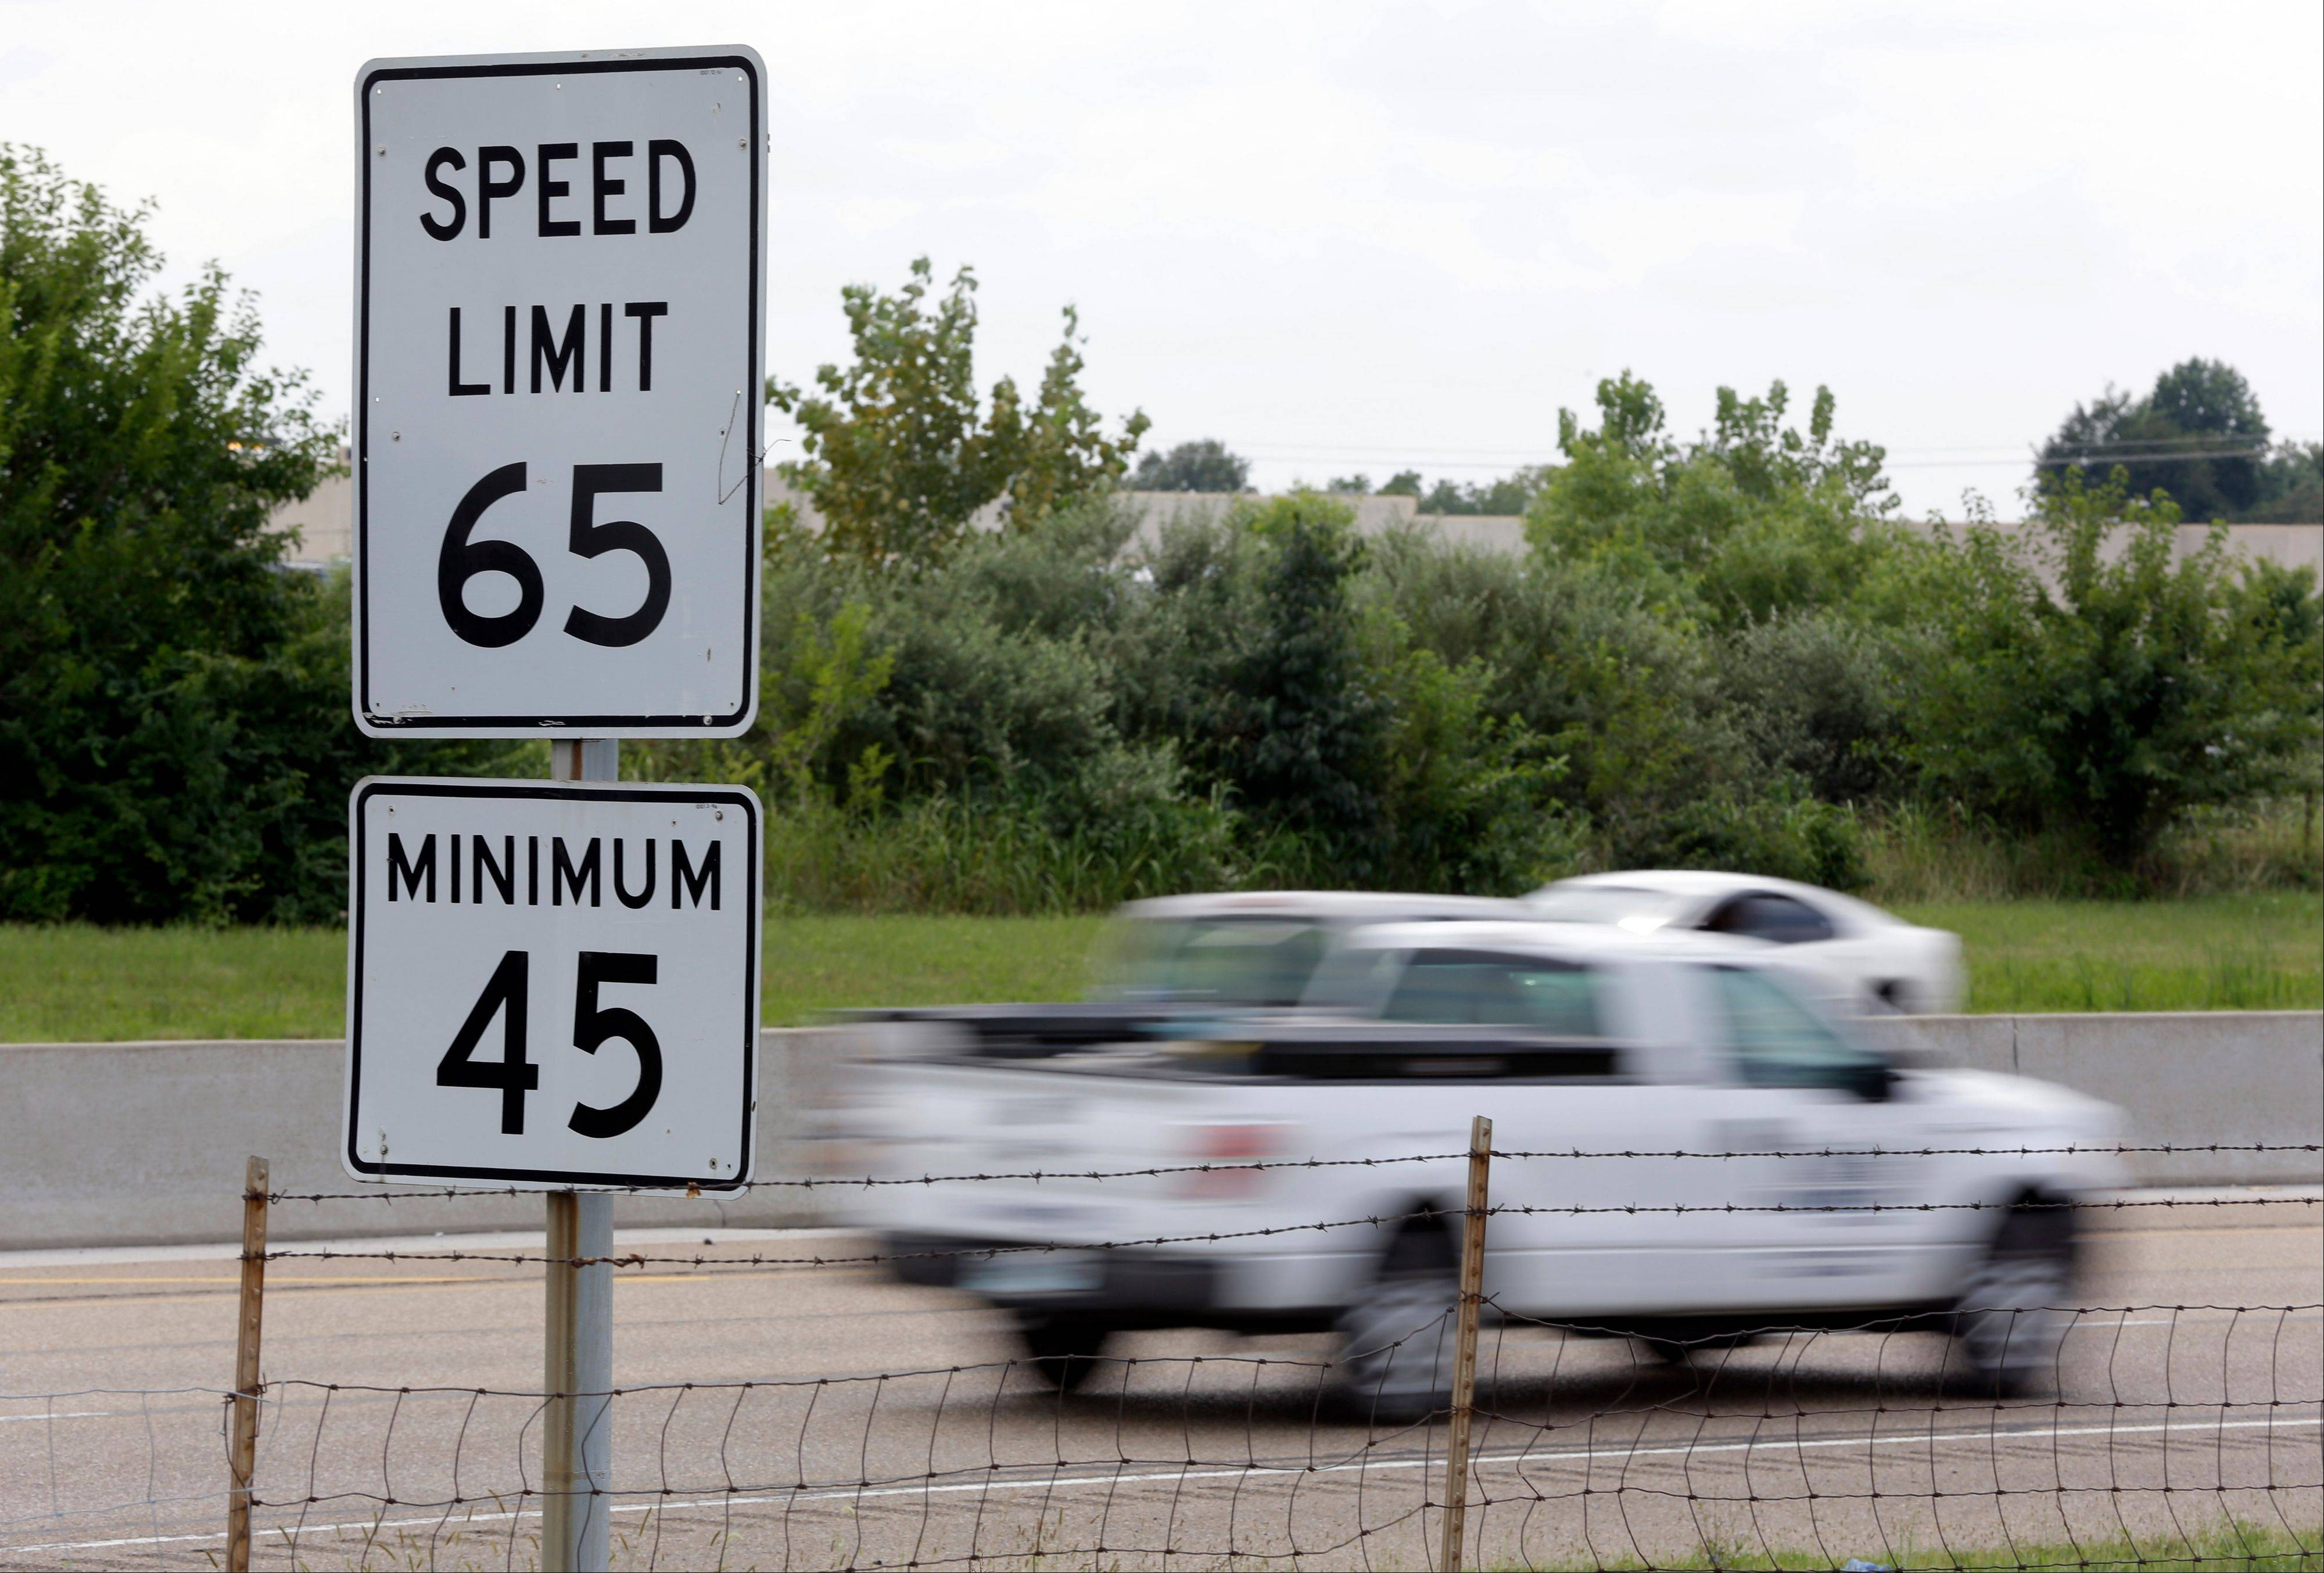 Critics say higher speed limits sacrificing safety